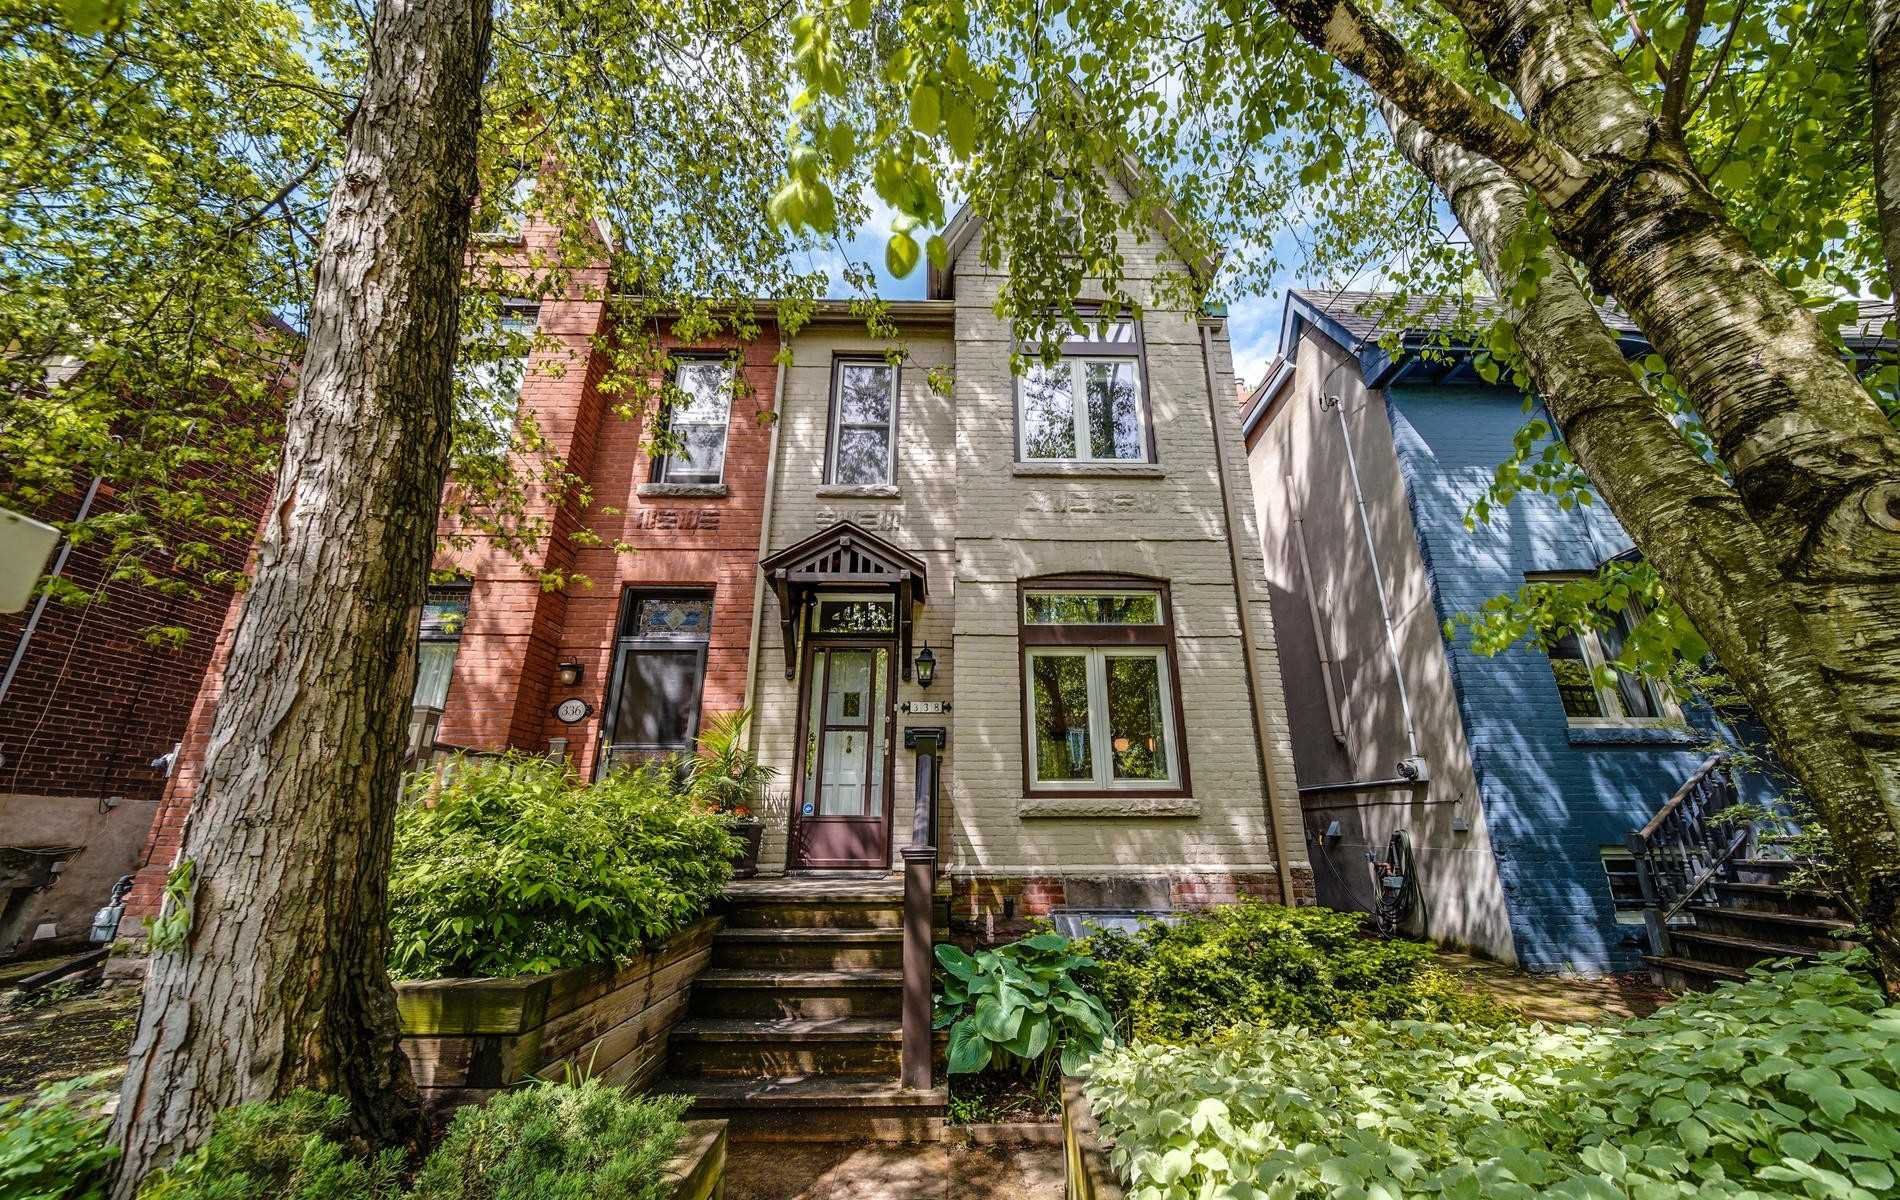 Main Photo: 338 Logan Avenue in Toronto: South Riverdale House (2 1/2 Storey) for sale (Toronto E01)  : MLS®# E4480515